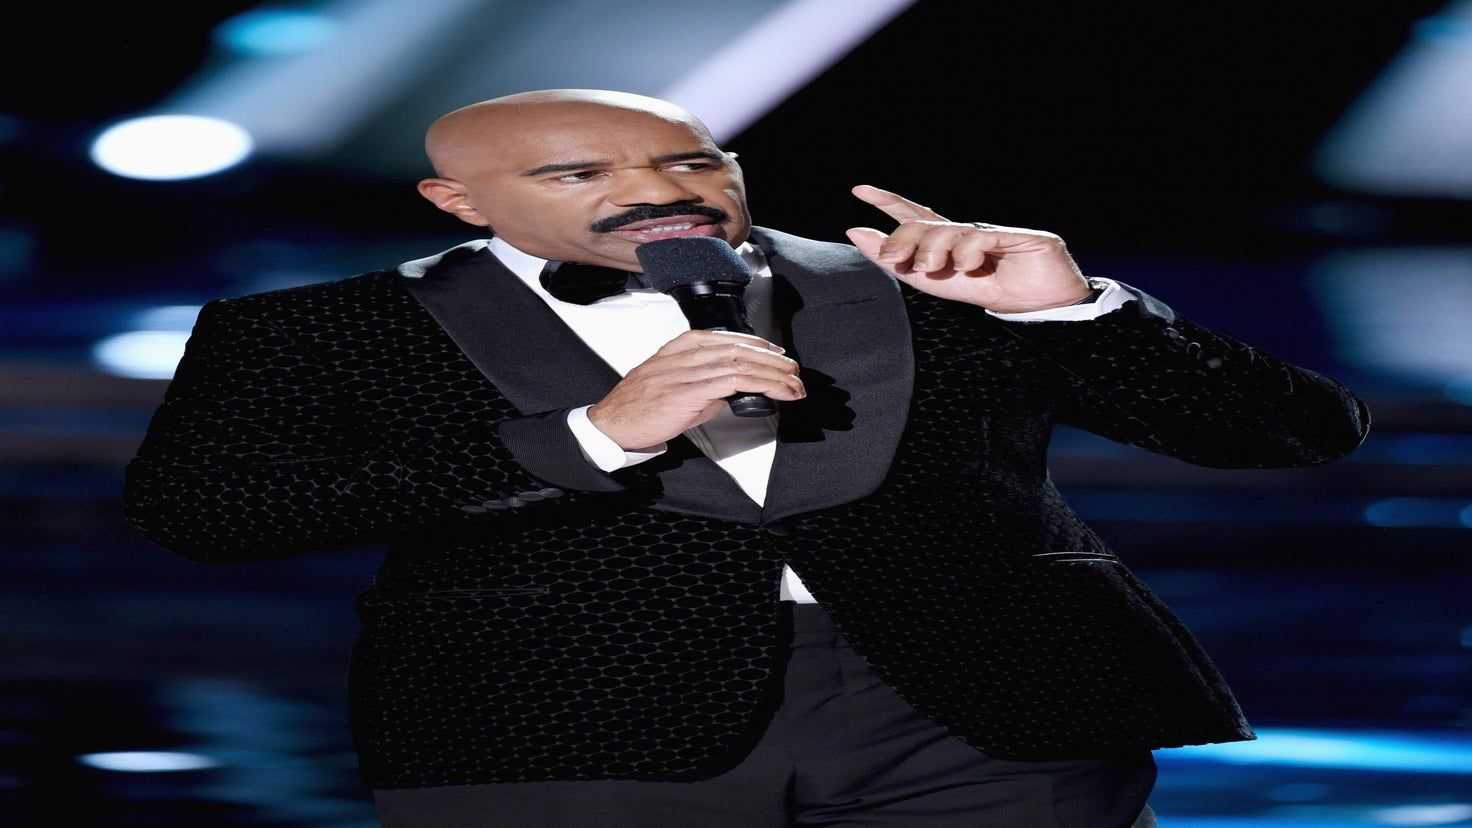 Steve Harvey Slams Reports that Miss Universe Gaffe Was a Publicity Stunt